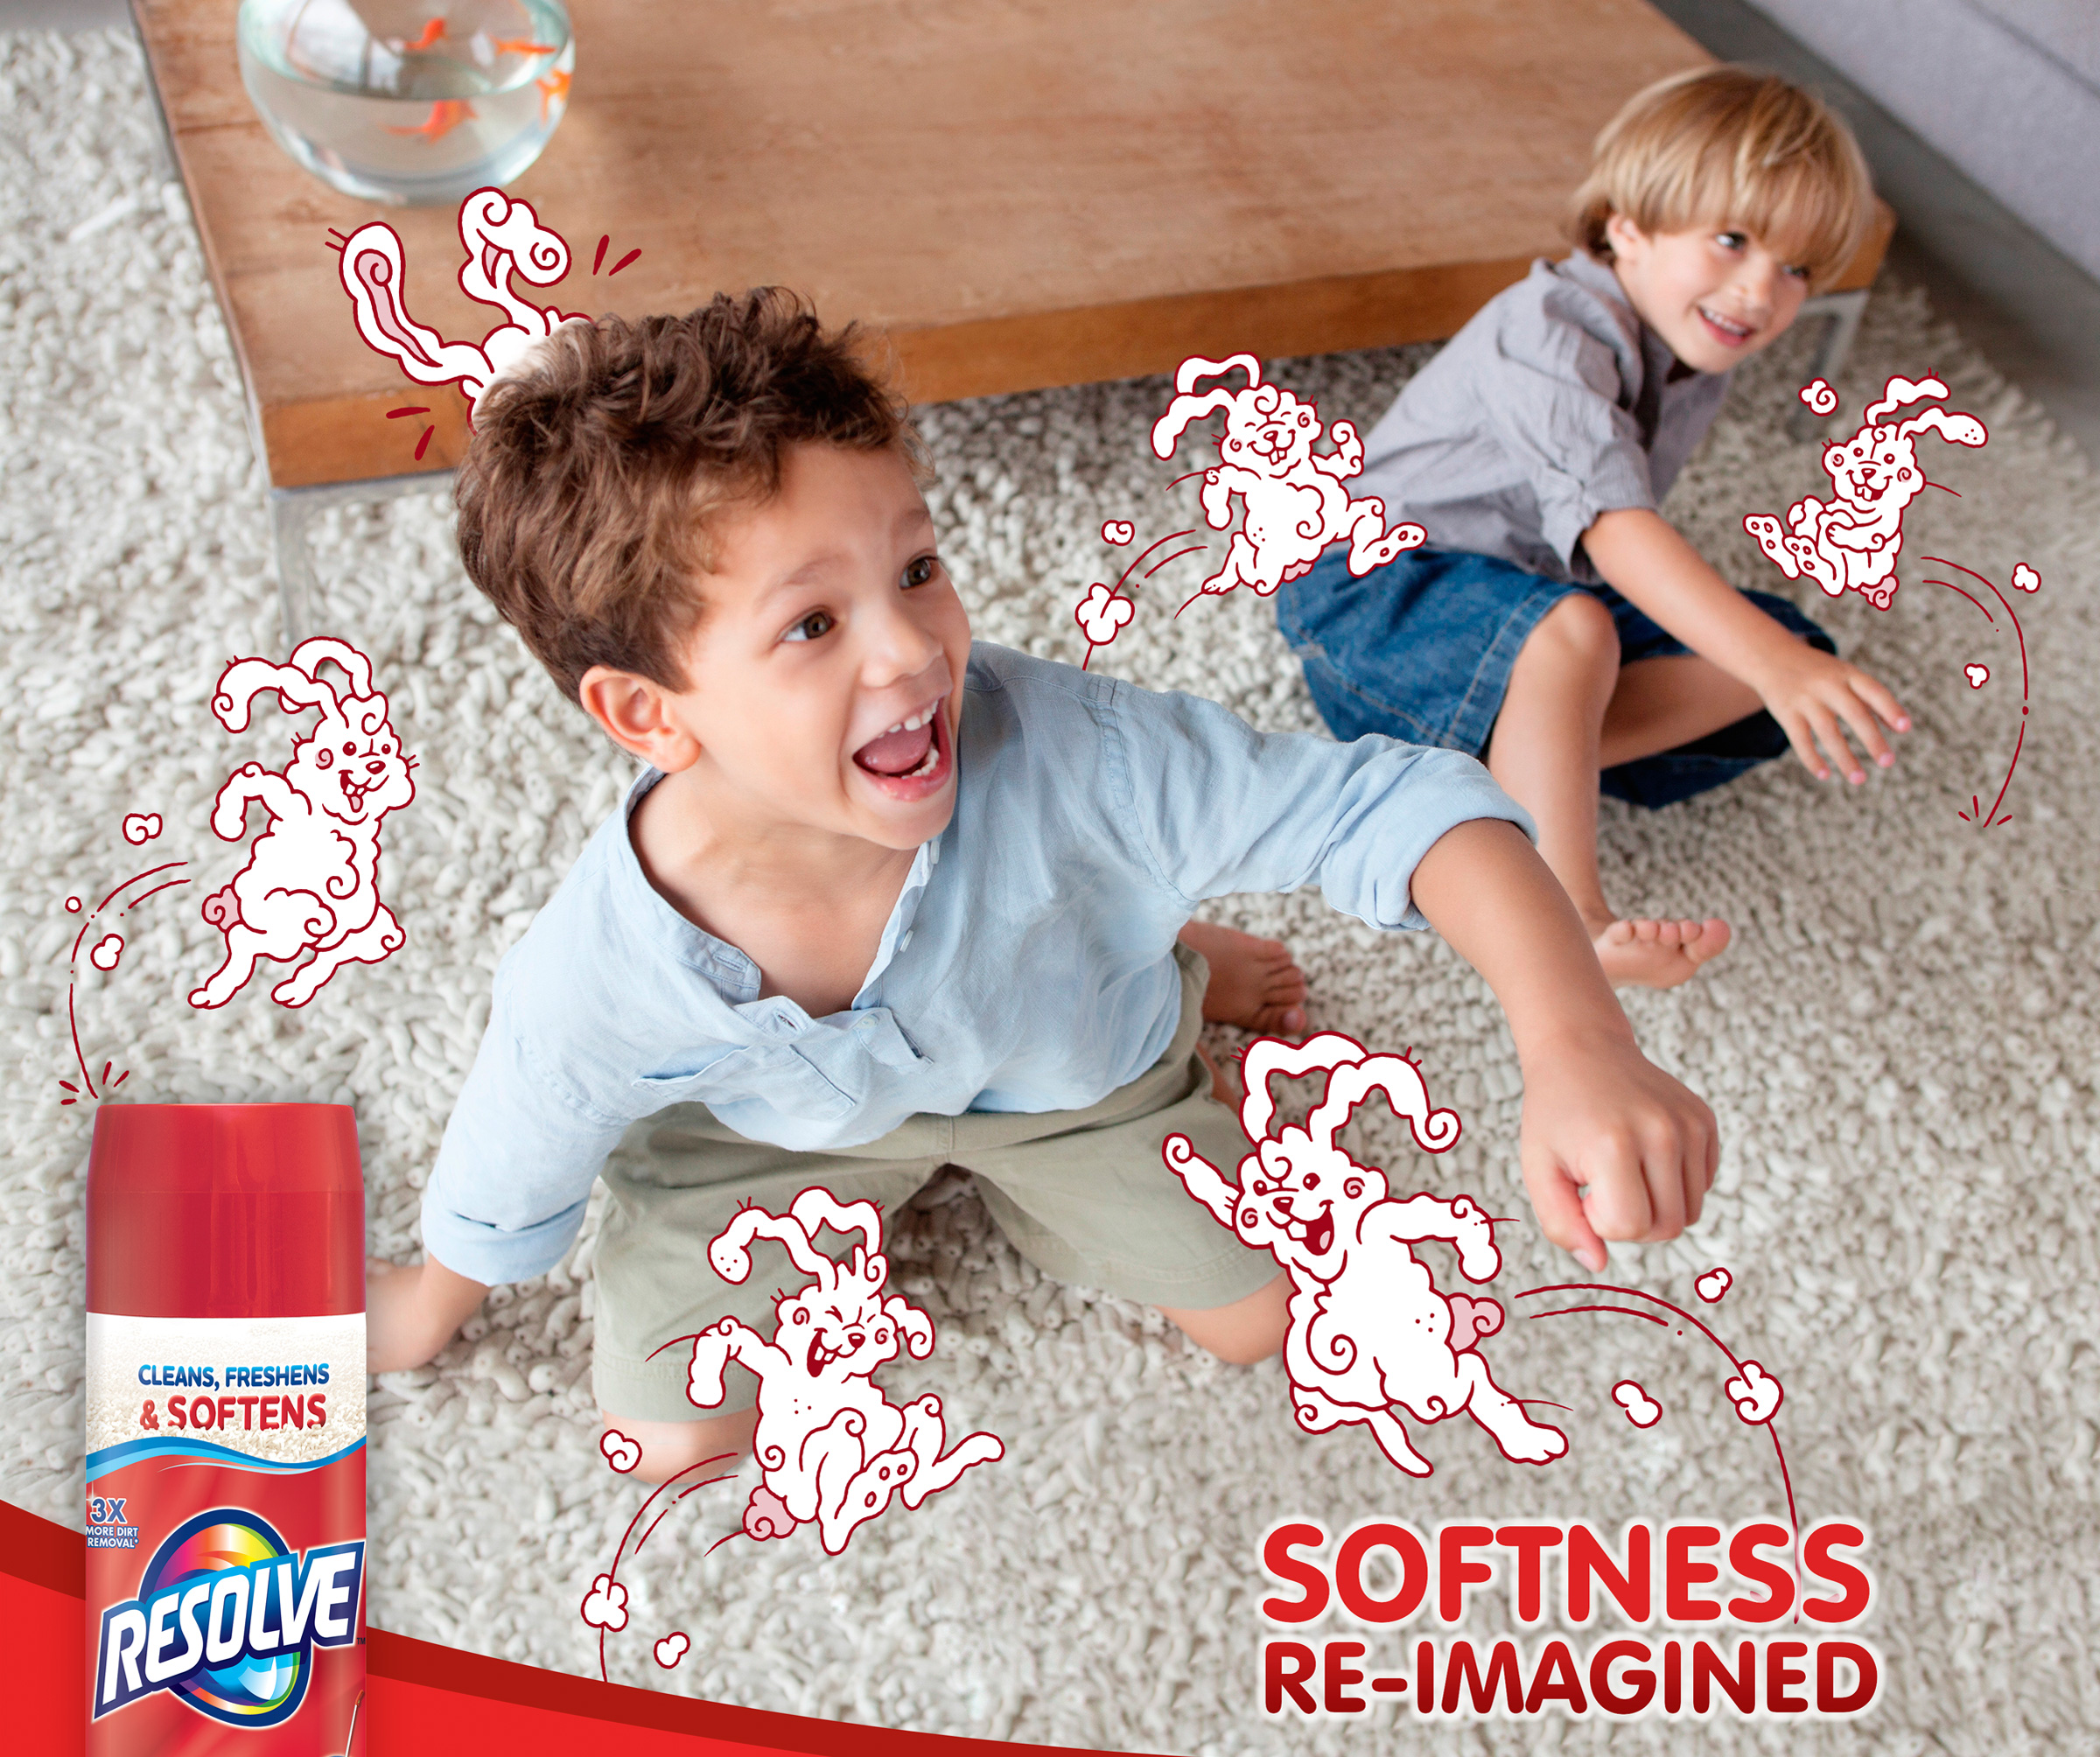 Your kids might think cotton candy bunnies hopping around soften the carpet. But you know our new formula cleans, freshens, and now SOFTENS your carpet.